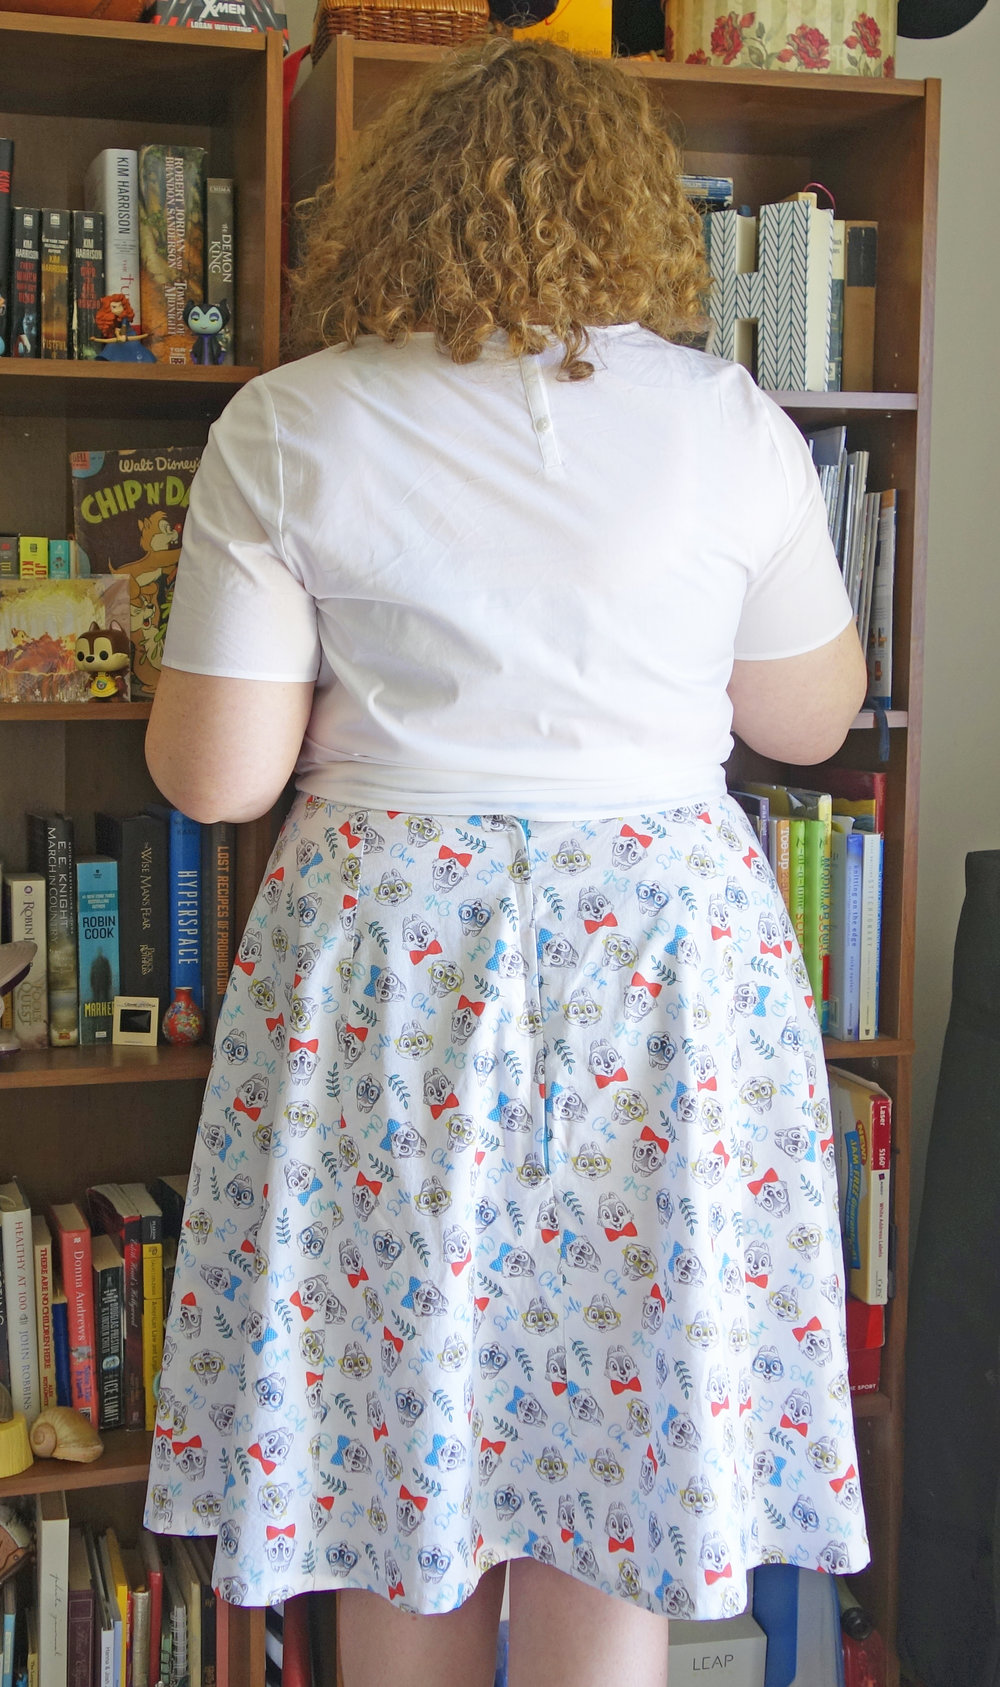 Backside of woman in chip n dale skirt